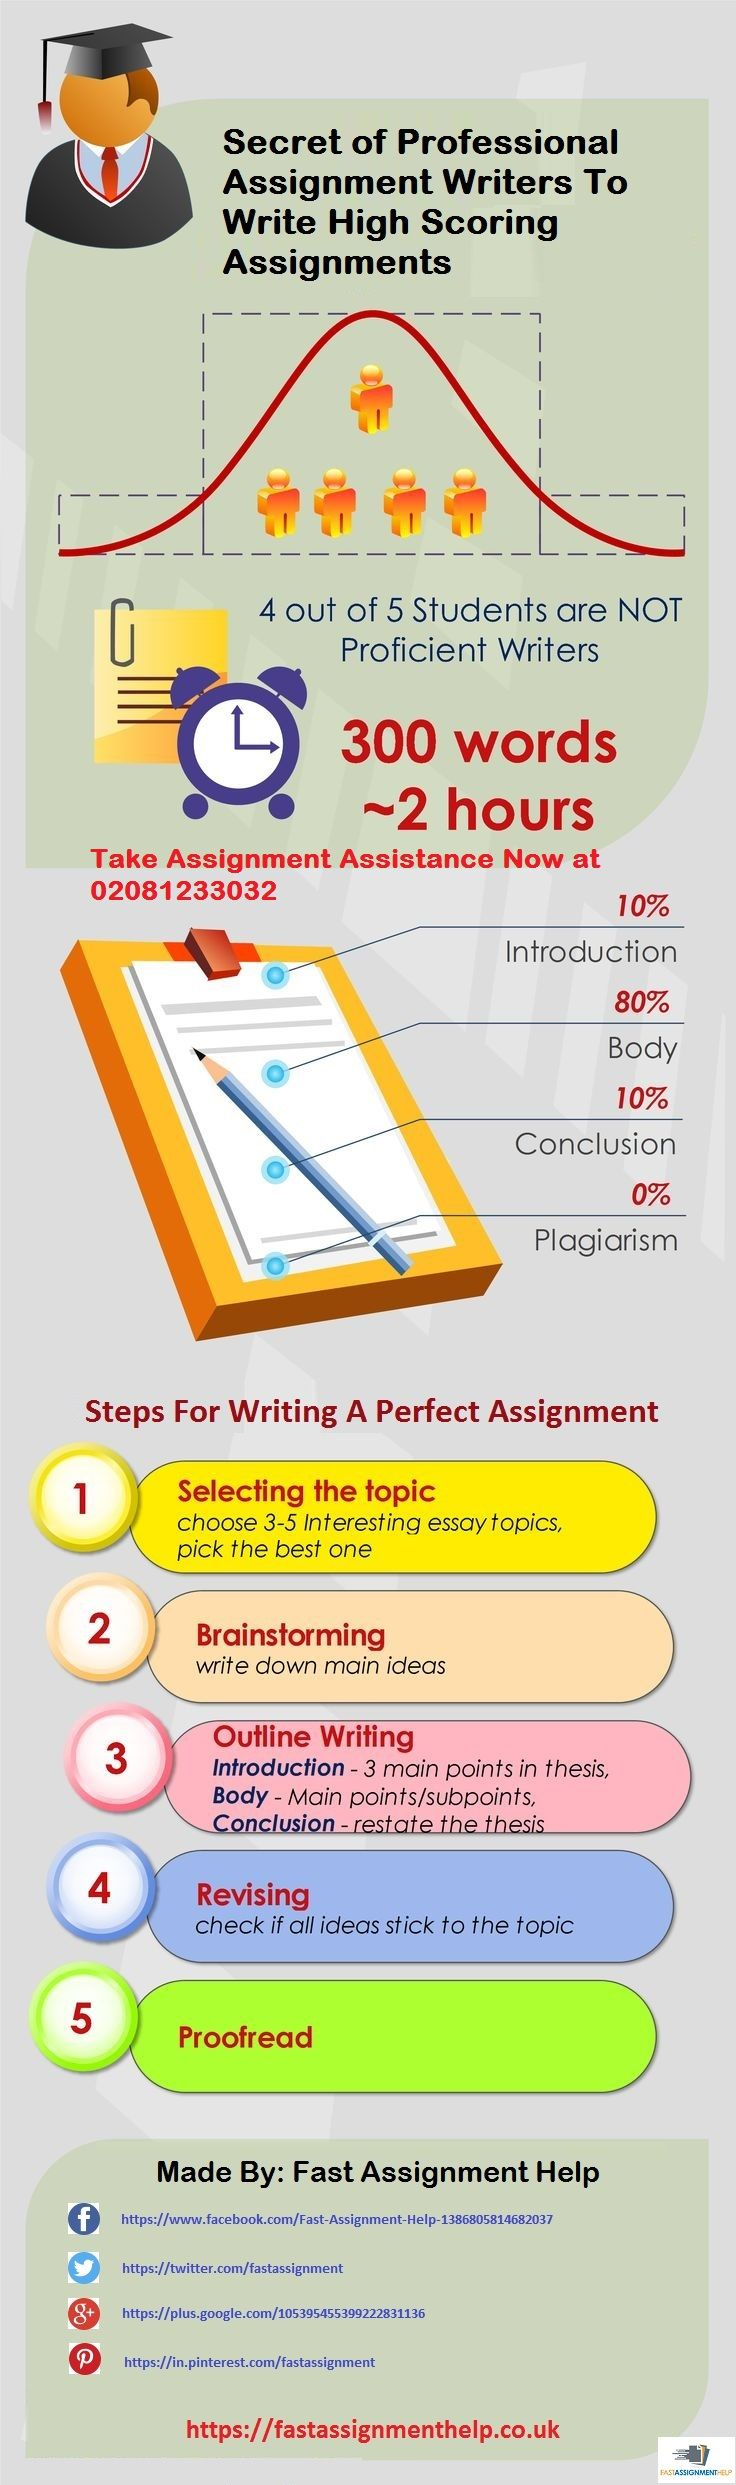 best images about assignment writing infographics assignment writers of fast assignment help are disclosing their secrets for the students to make high